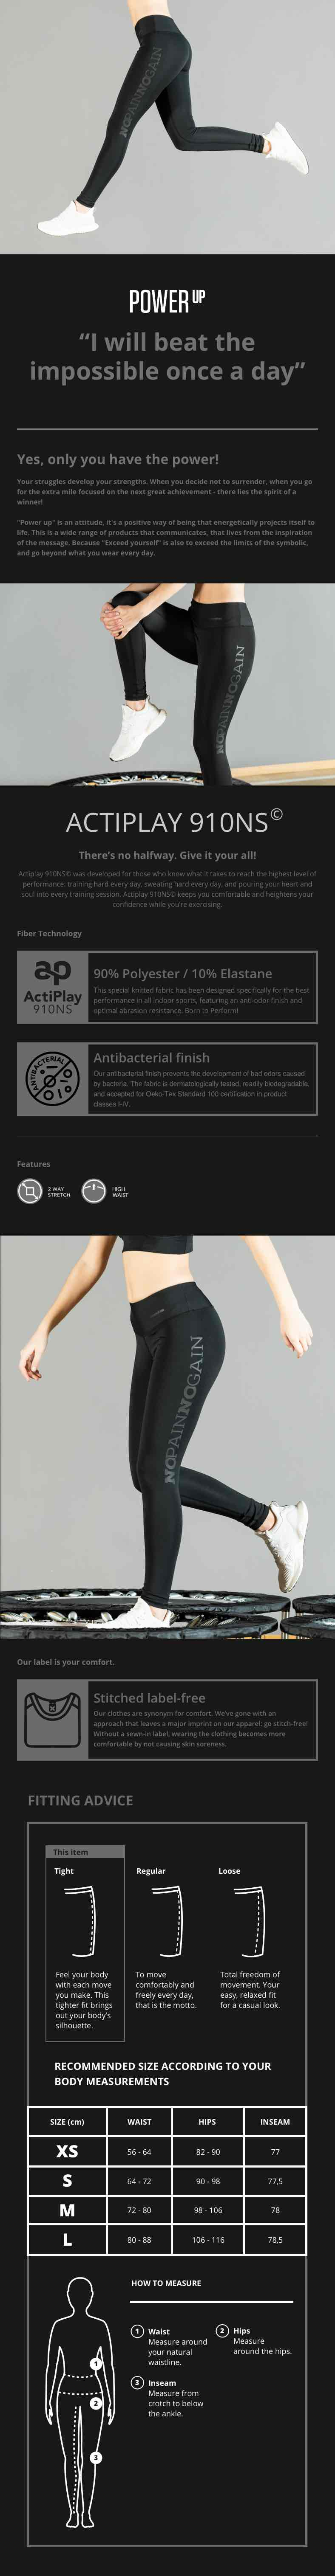 Power Up Leggings - No Pain No Gain - description